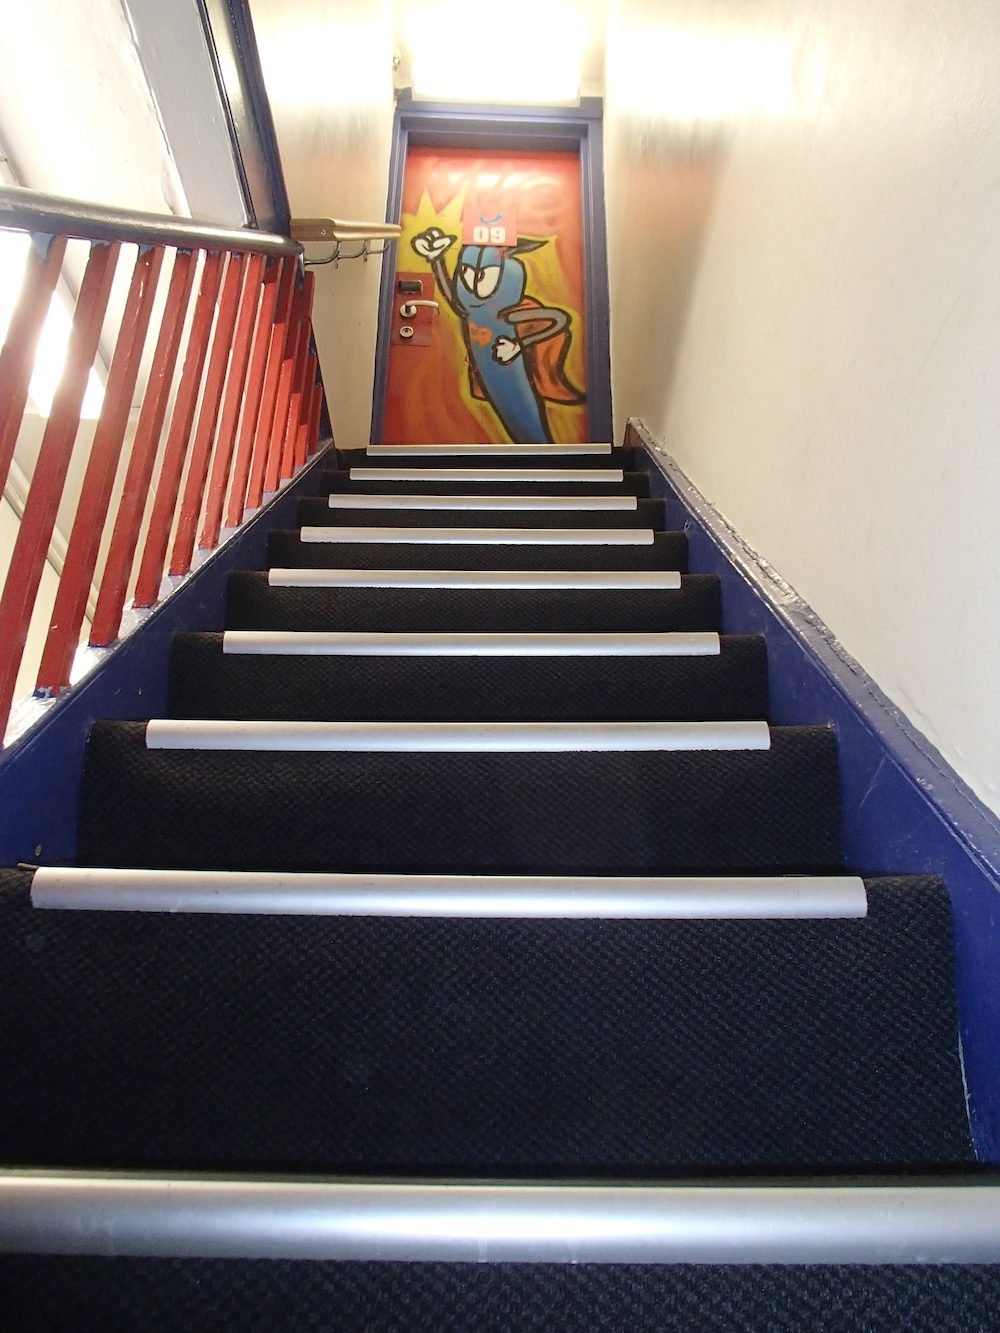 Stairways to a dorm